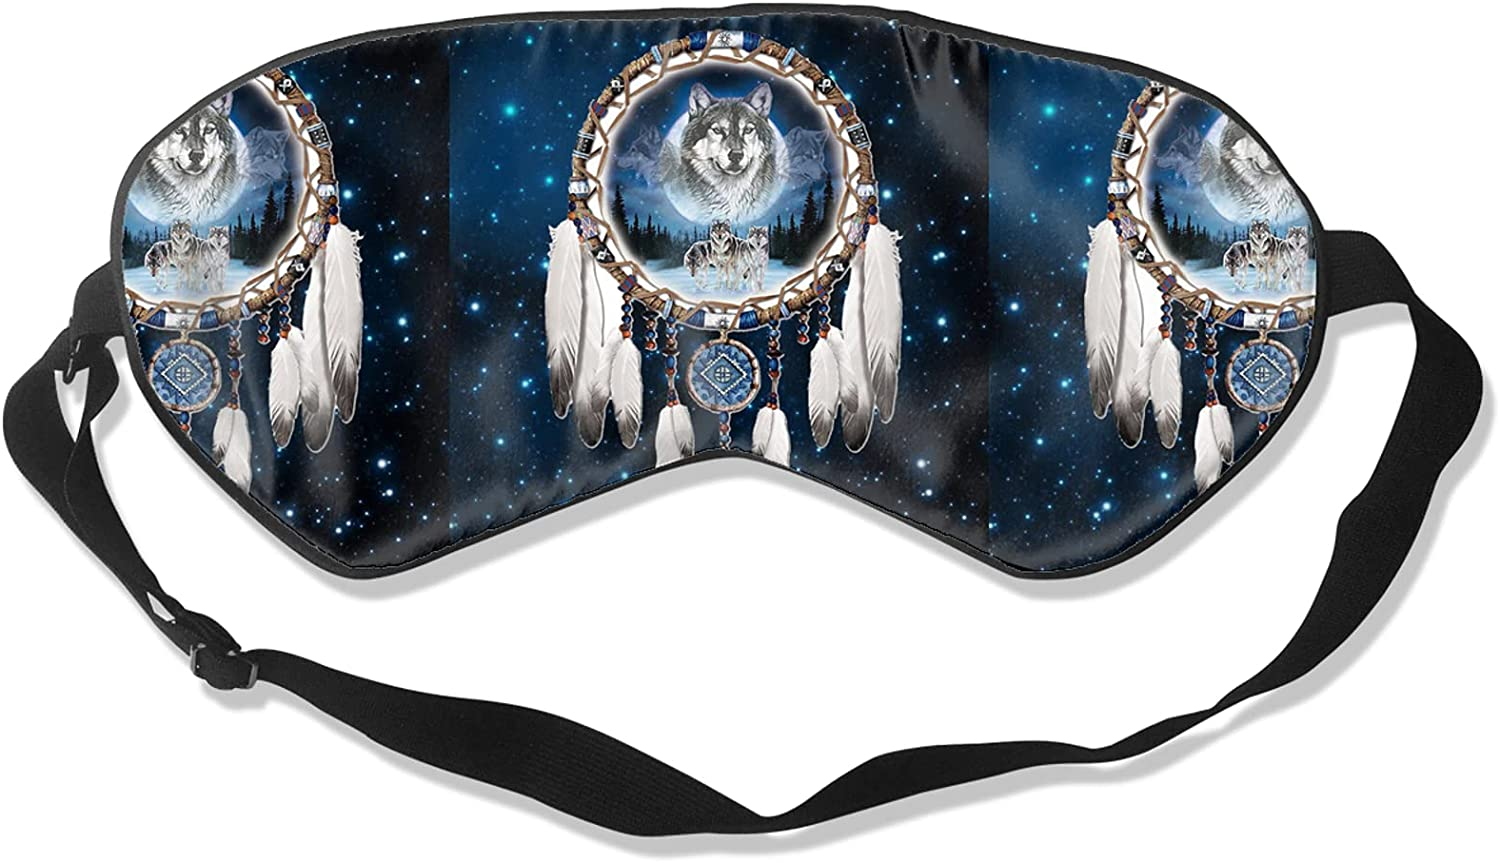 Wolf and Indian Dream Catcher Ultra-Cheap Max 54% OFF Deals Comfortable So Sleep Blindfold Eye